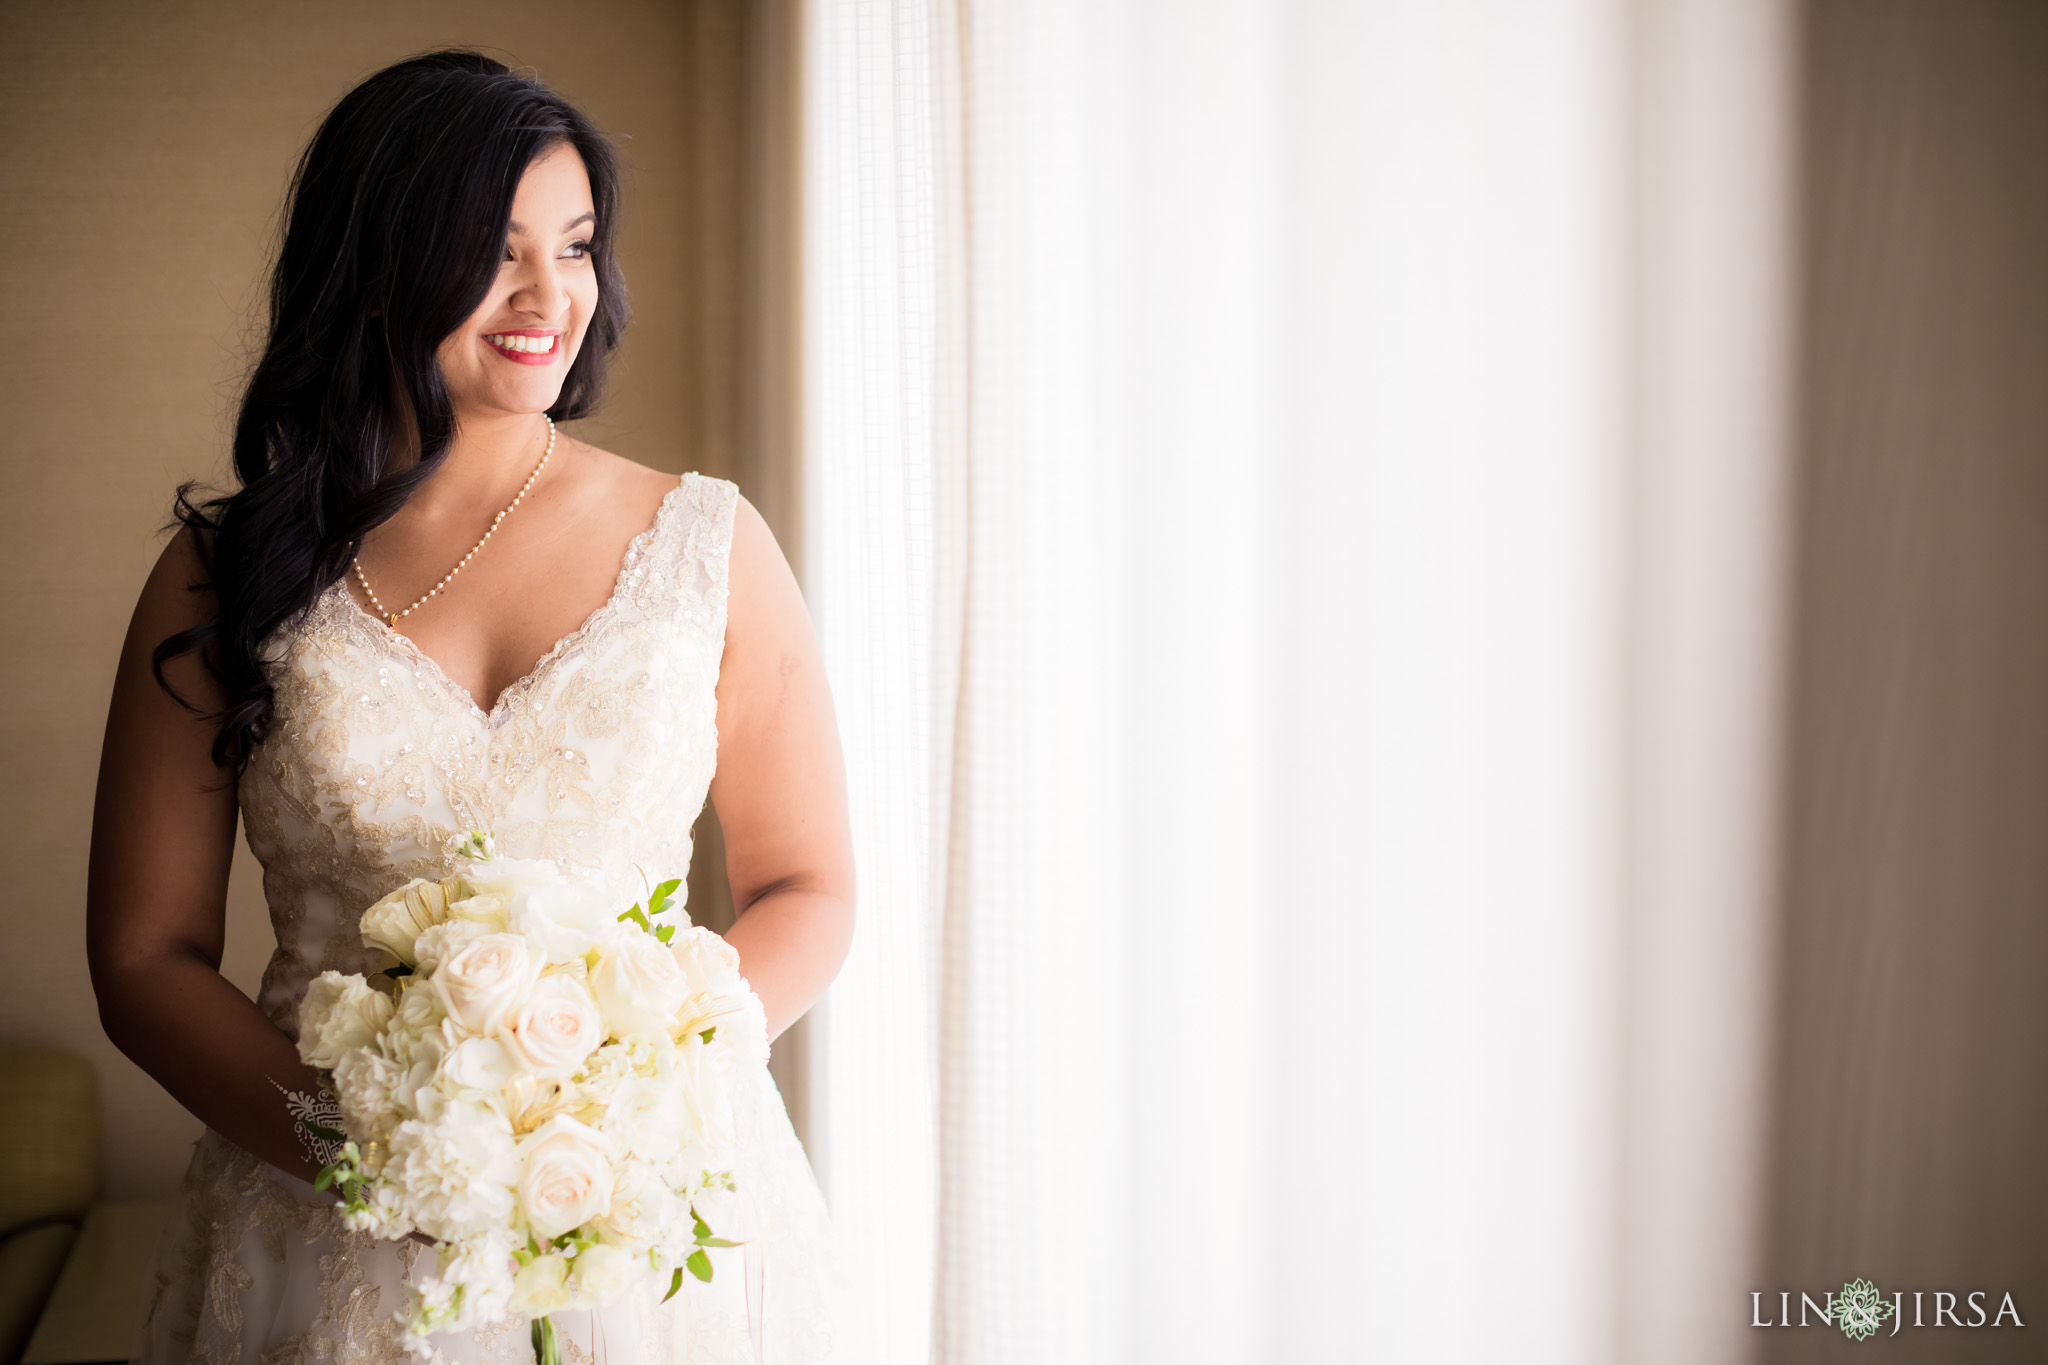 5 hyatt regency huntington beach bride wedding photography